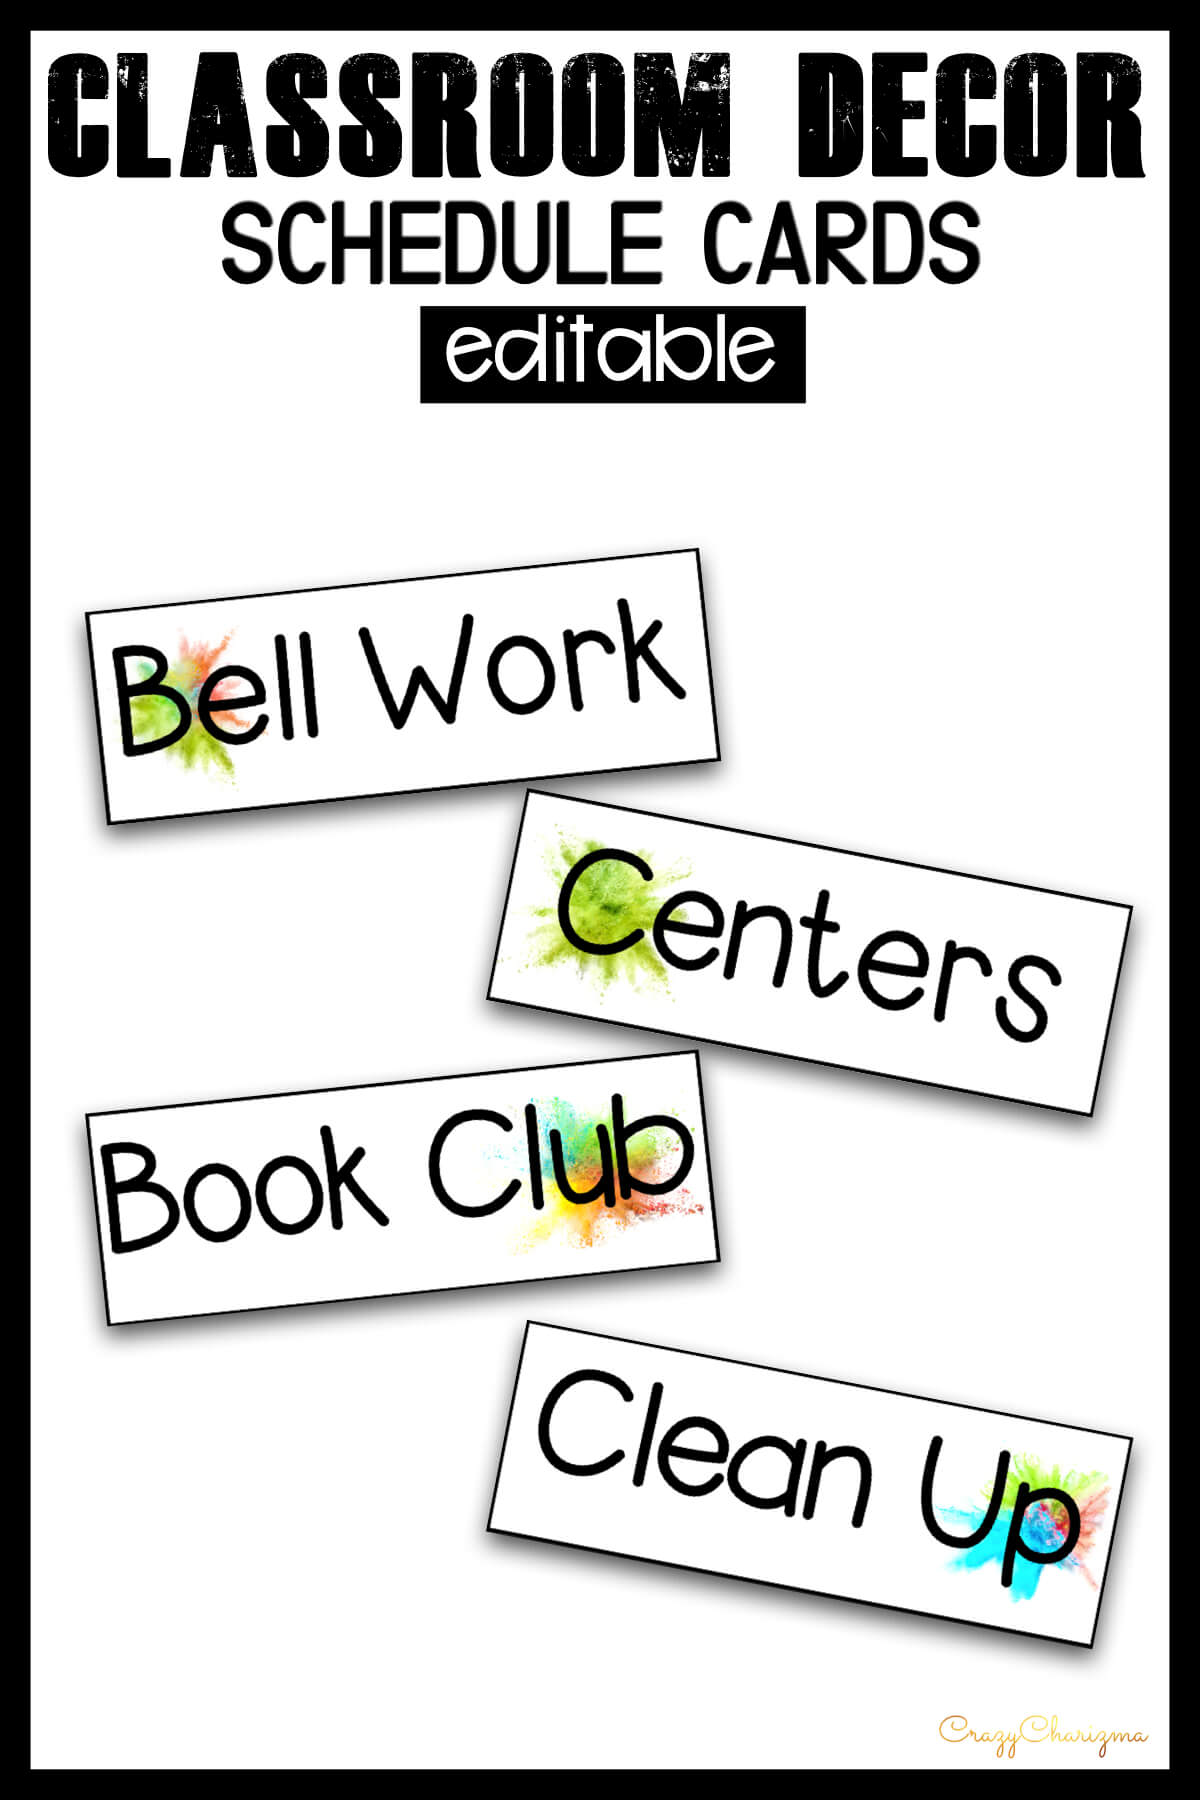 Looking for bright and clear schedule cards? Spice your classroom with this visually appealing SPLASH classroom decor!